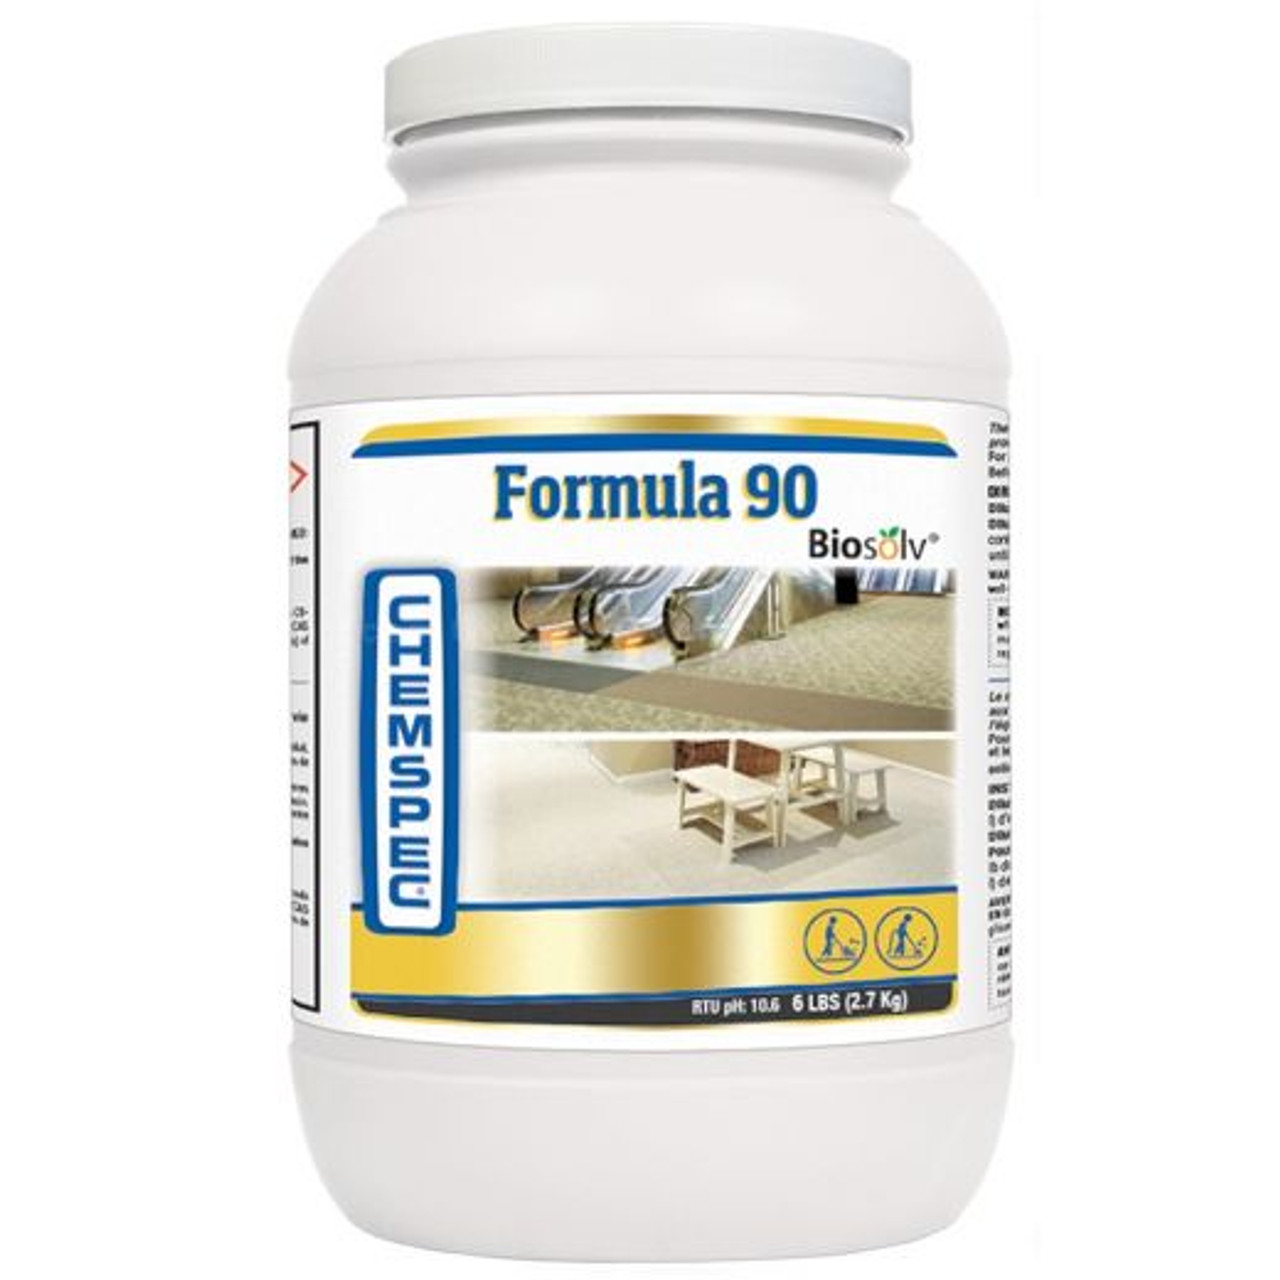 Formula 90 Powder 6 LB CASE of 4 Each